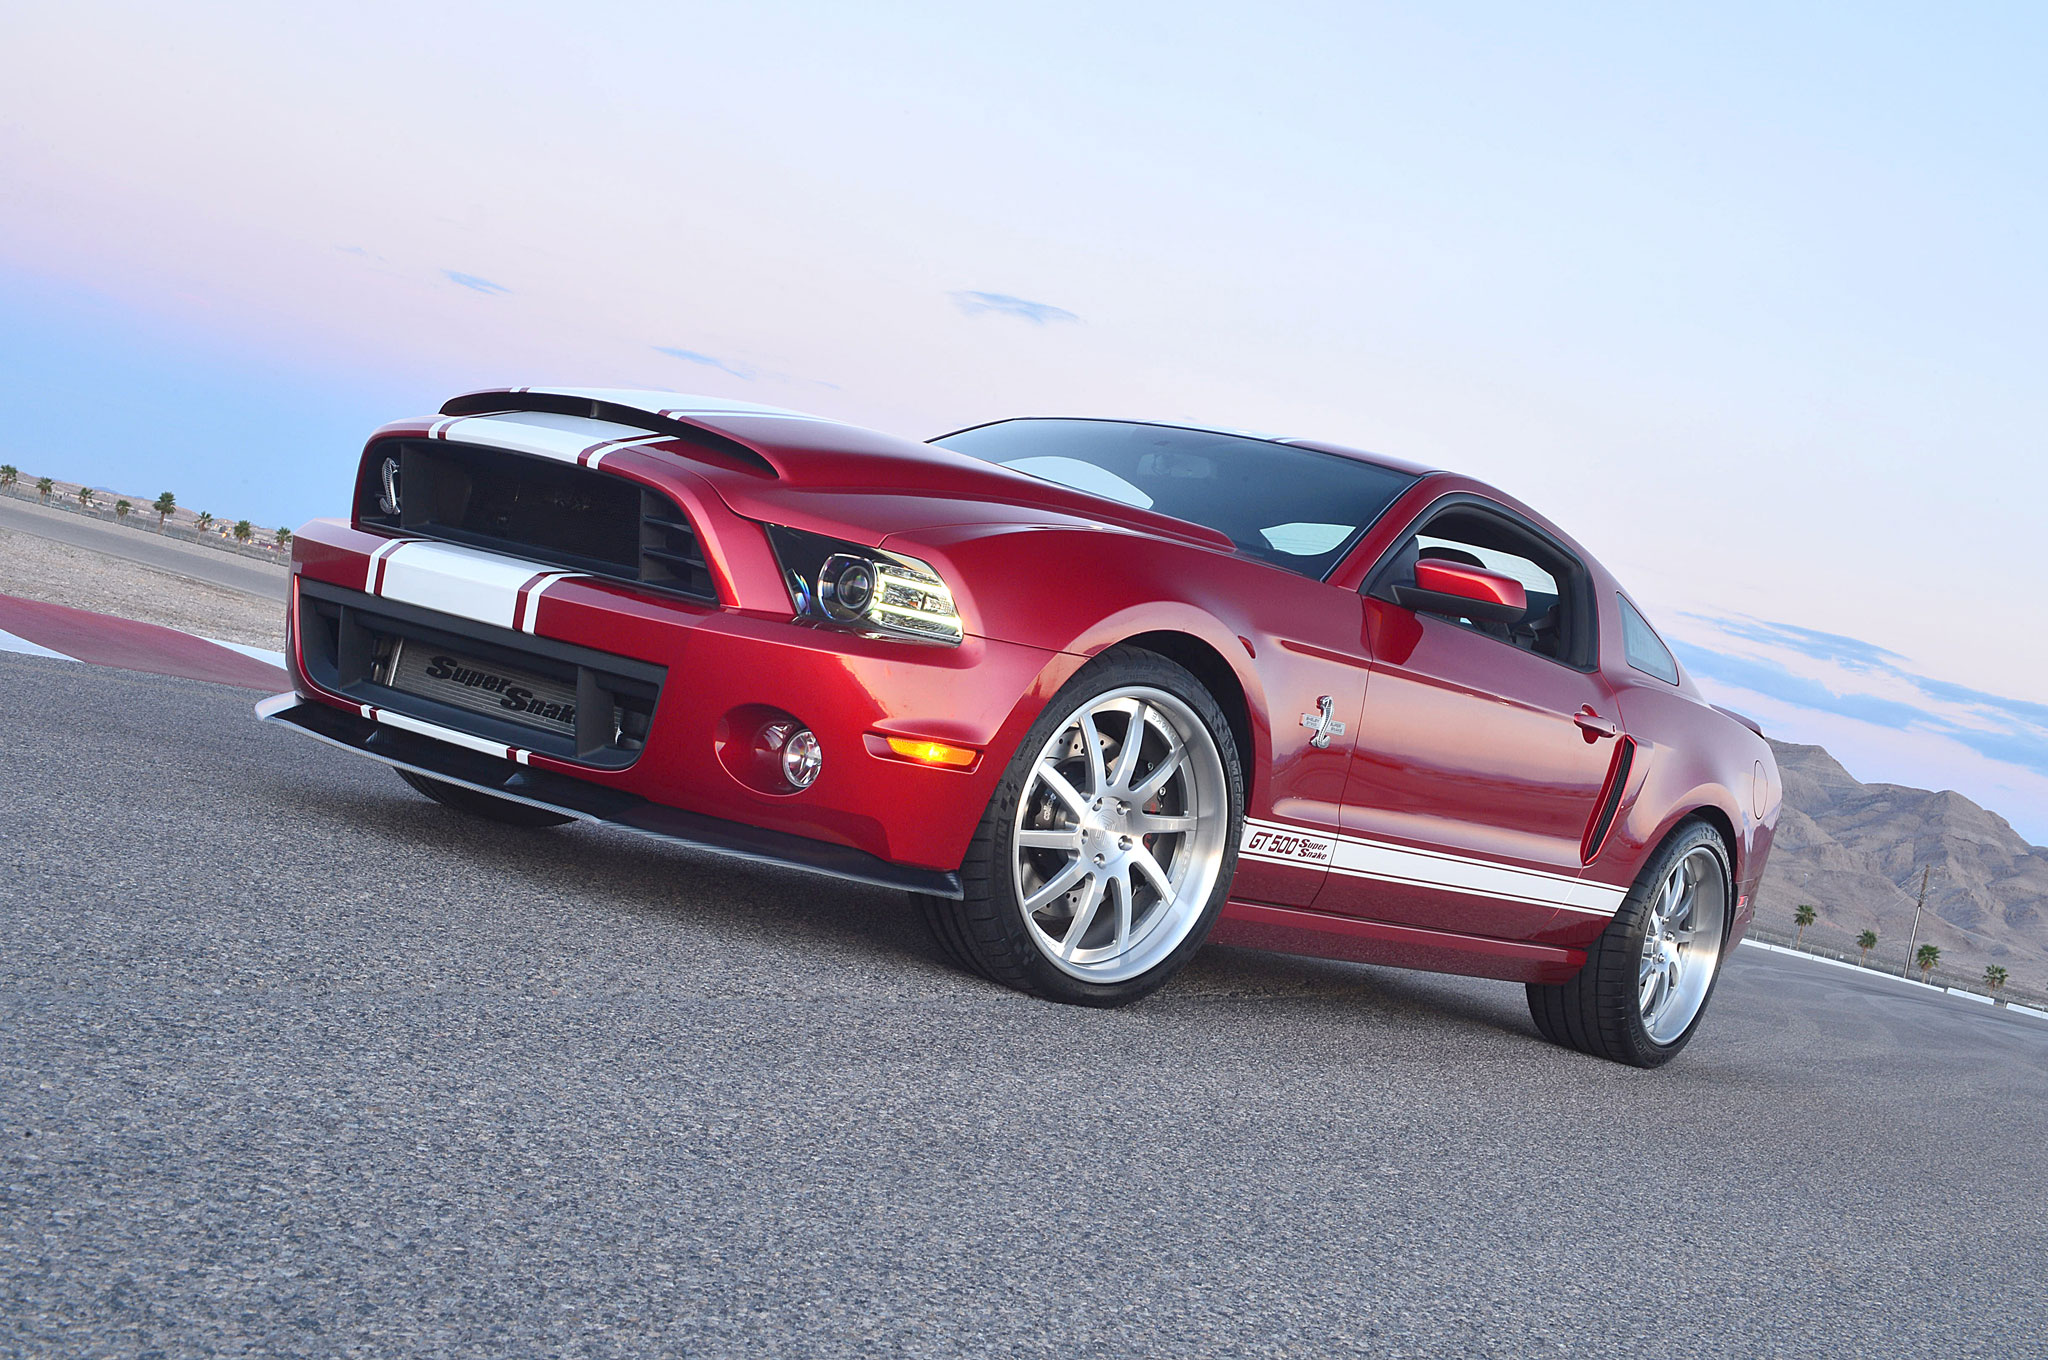 2013 shelby gt500 super snake first drive automobile magazine grounded in reality sciox Image collections